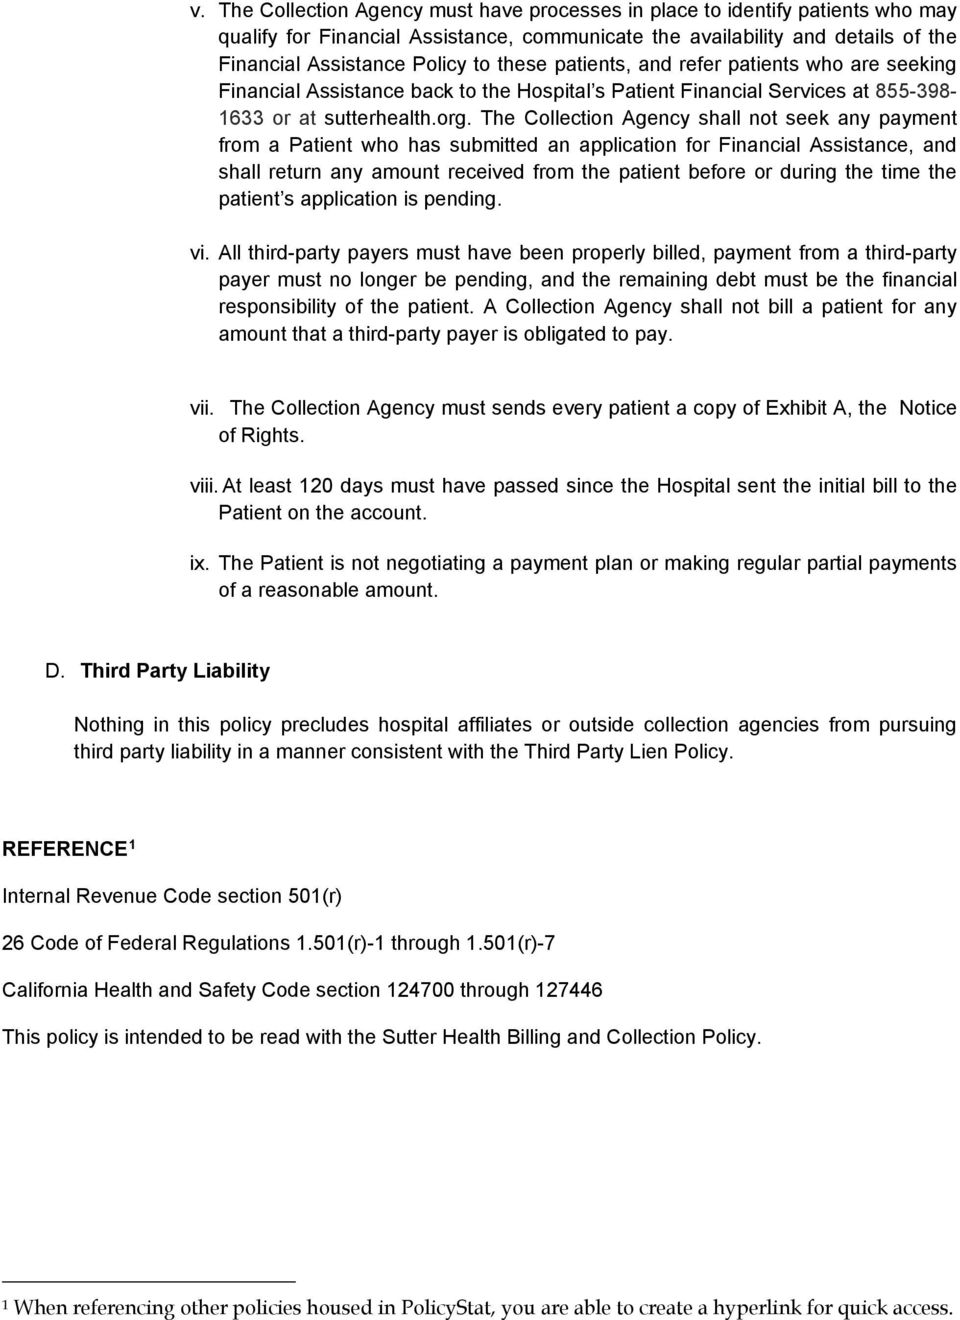 POLICY ON Billing and Collections for Sutter Health